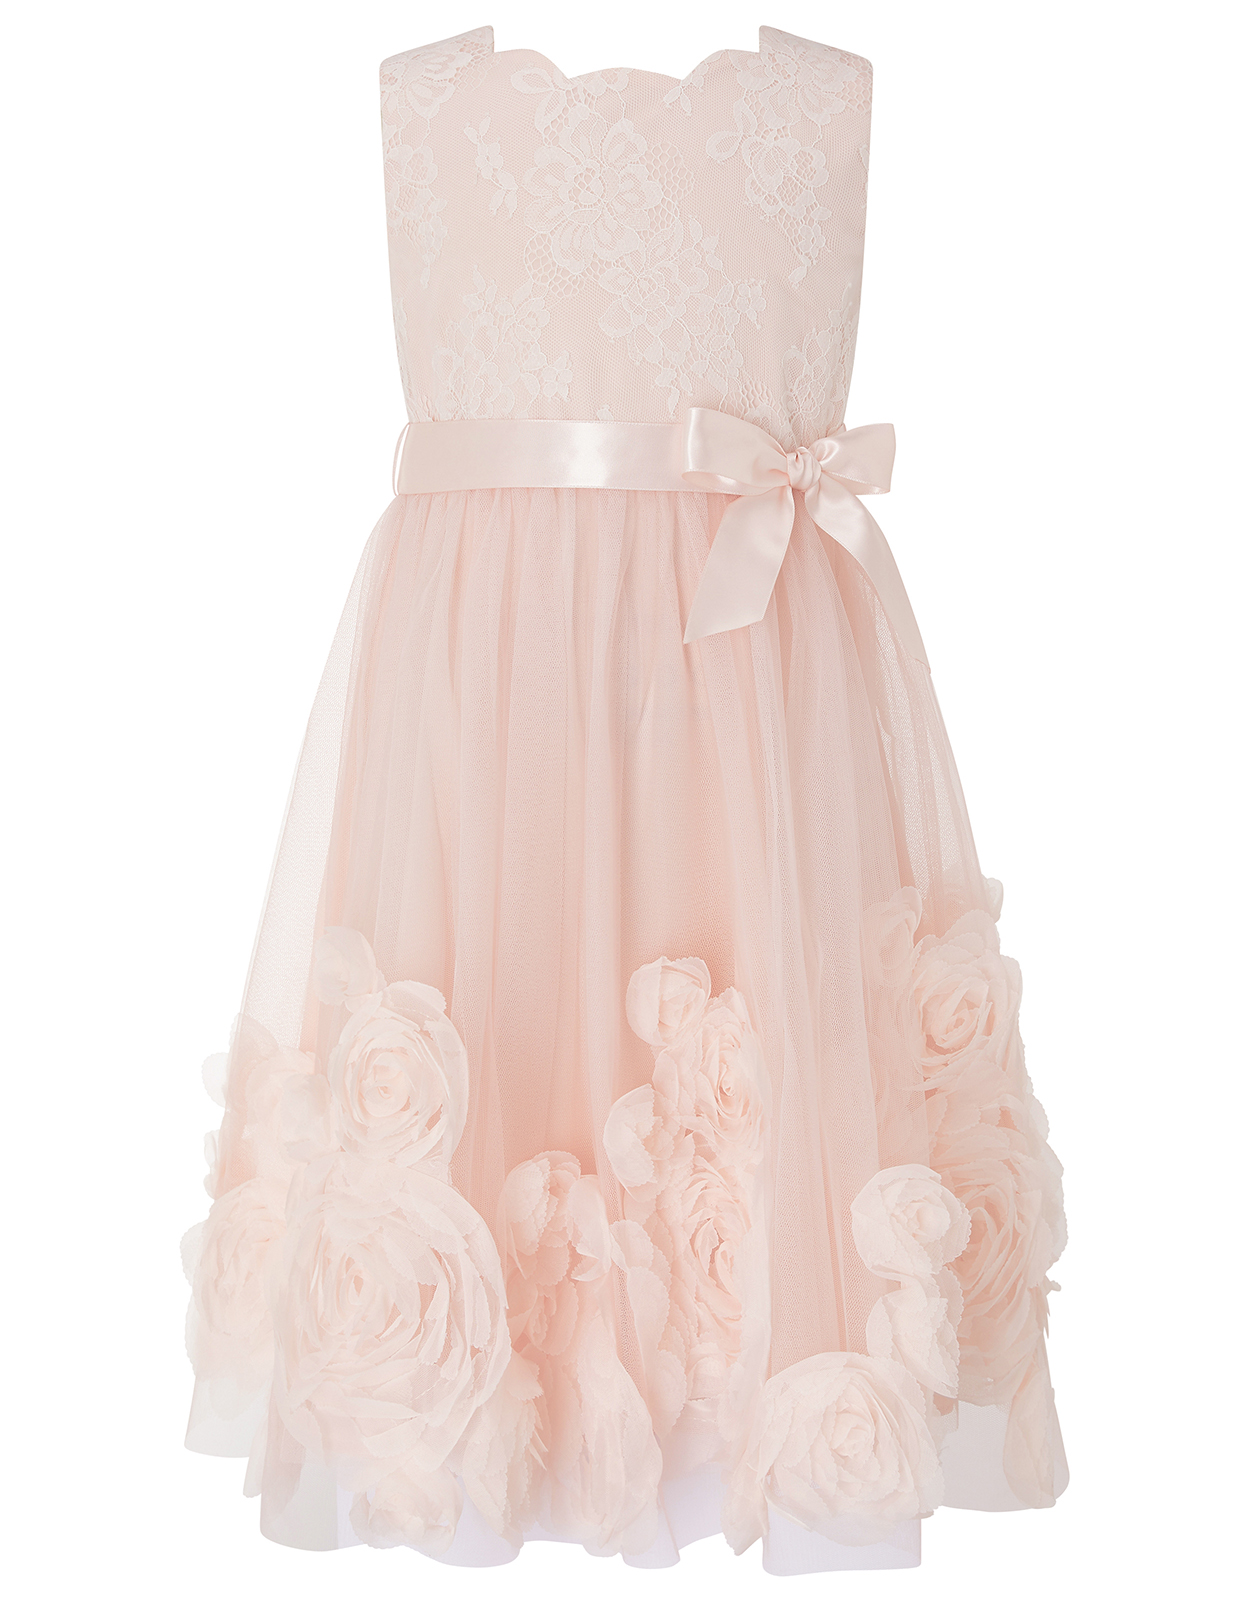 MACAROON OCCASION DRESS WITH 3D FLOWERS